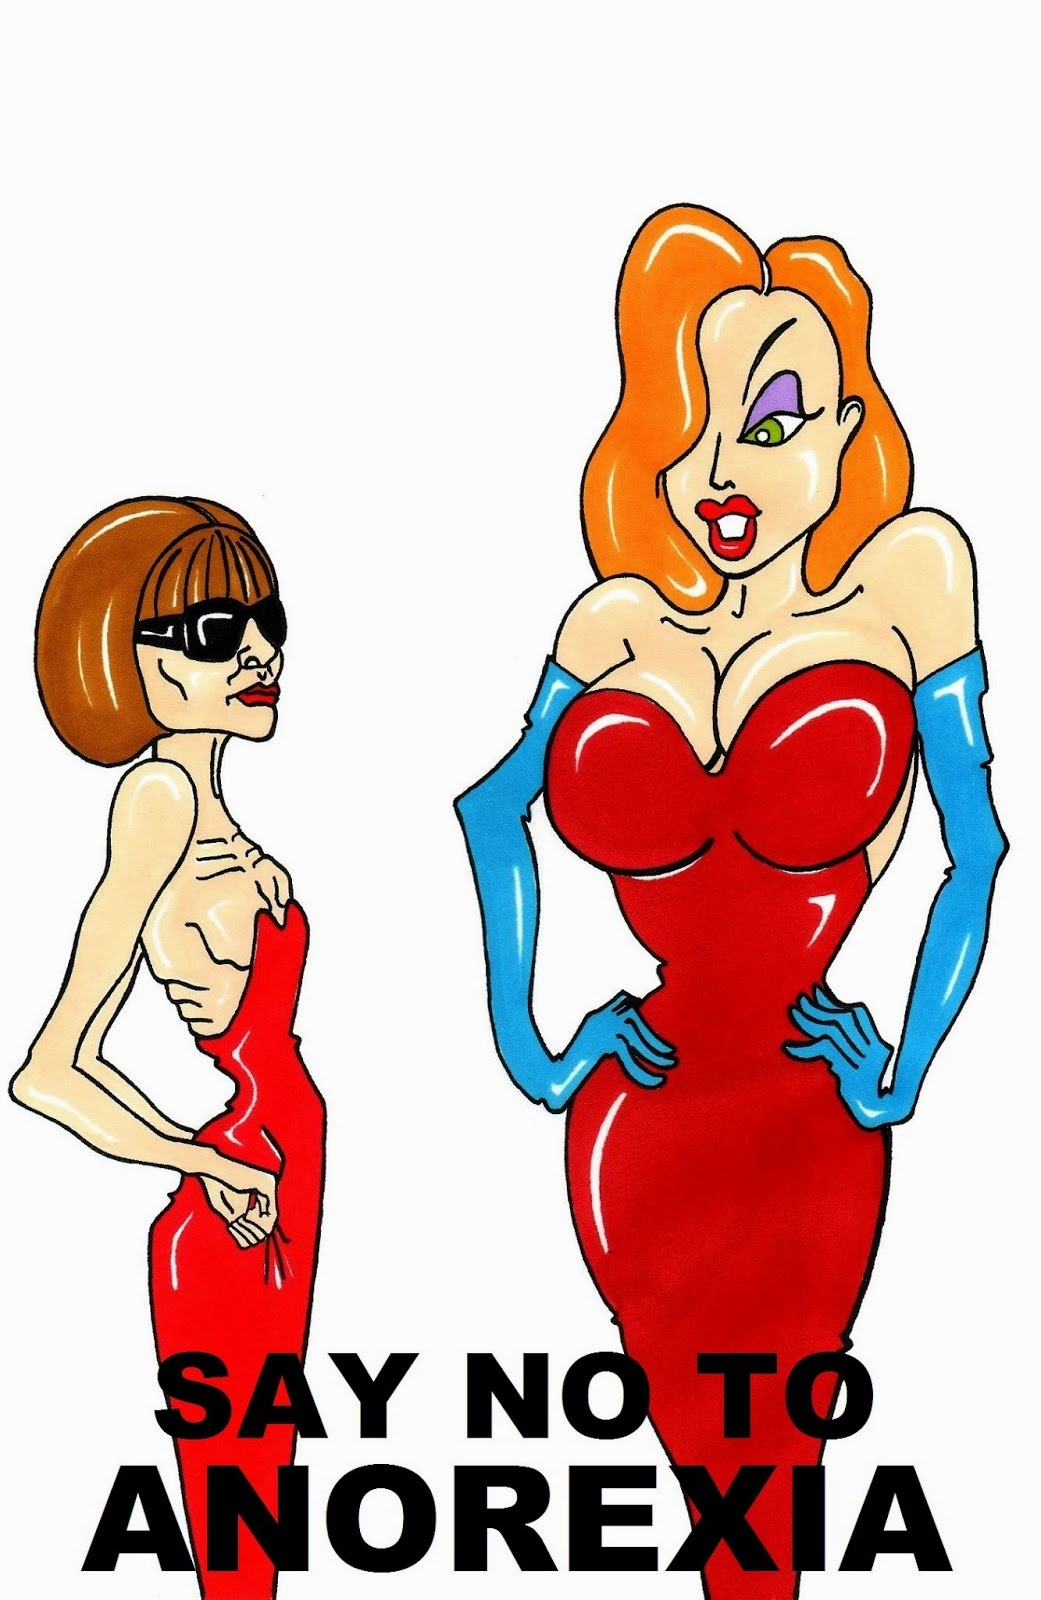 Social Health Campaign VOGUE Editrix Anna Wintour and Jessica Rabbit Say No to ANOREXIA Art Portrait Fashion Luxury Body Health Satire Critic Humor Chic by aleXsandro Palombo